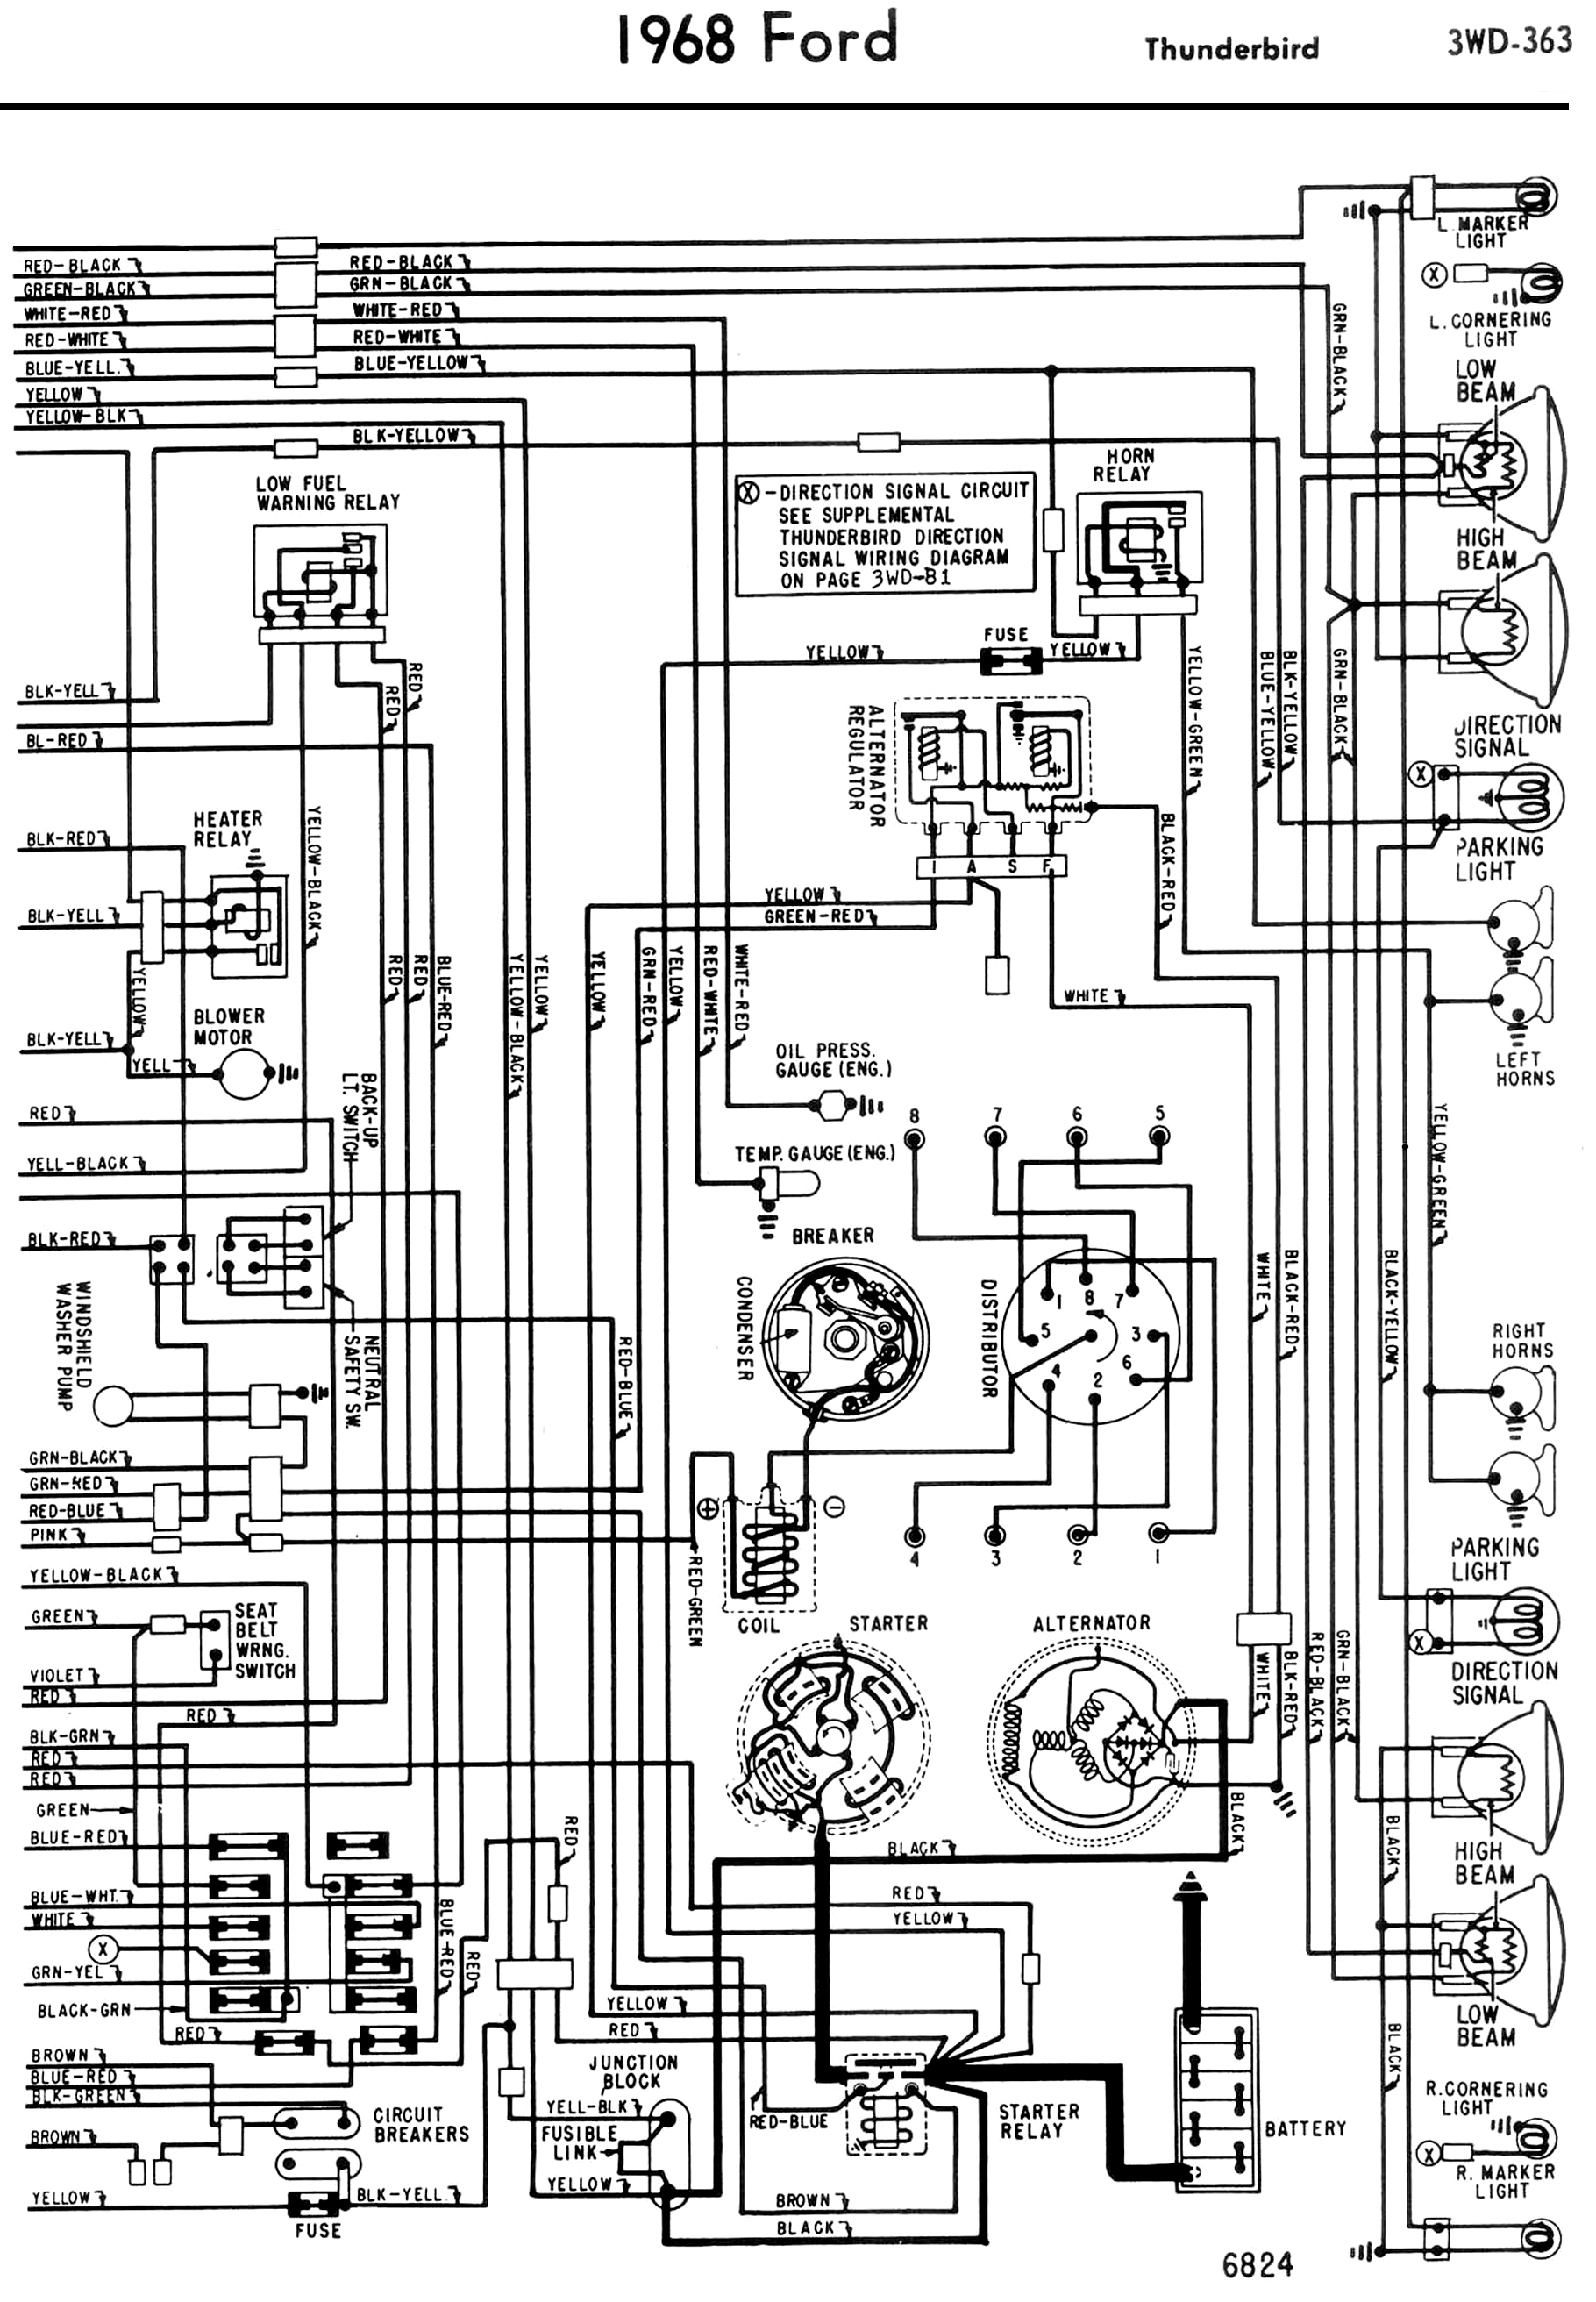 1968 Ford Wiring Diagram Tail Lights Archive Of Automotive F100 Stereo 1958 68 Electrical Schematics Rh Squarebirds Org